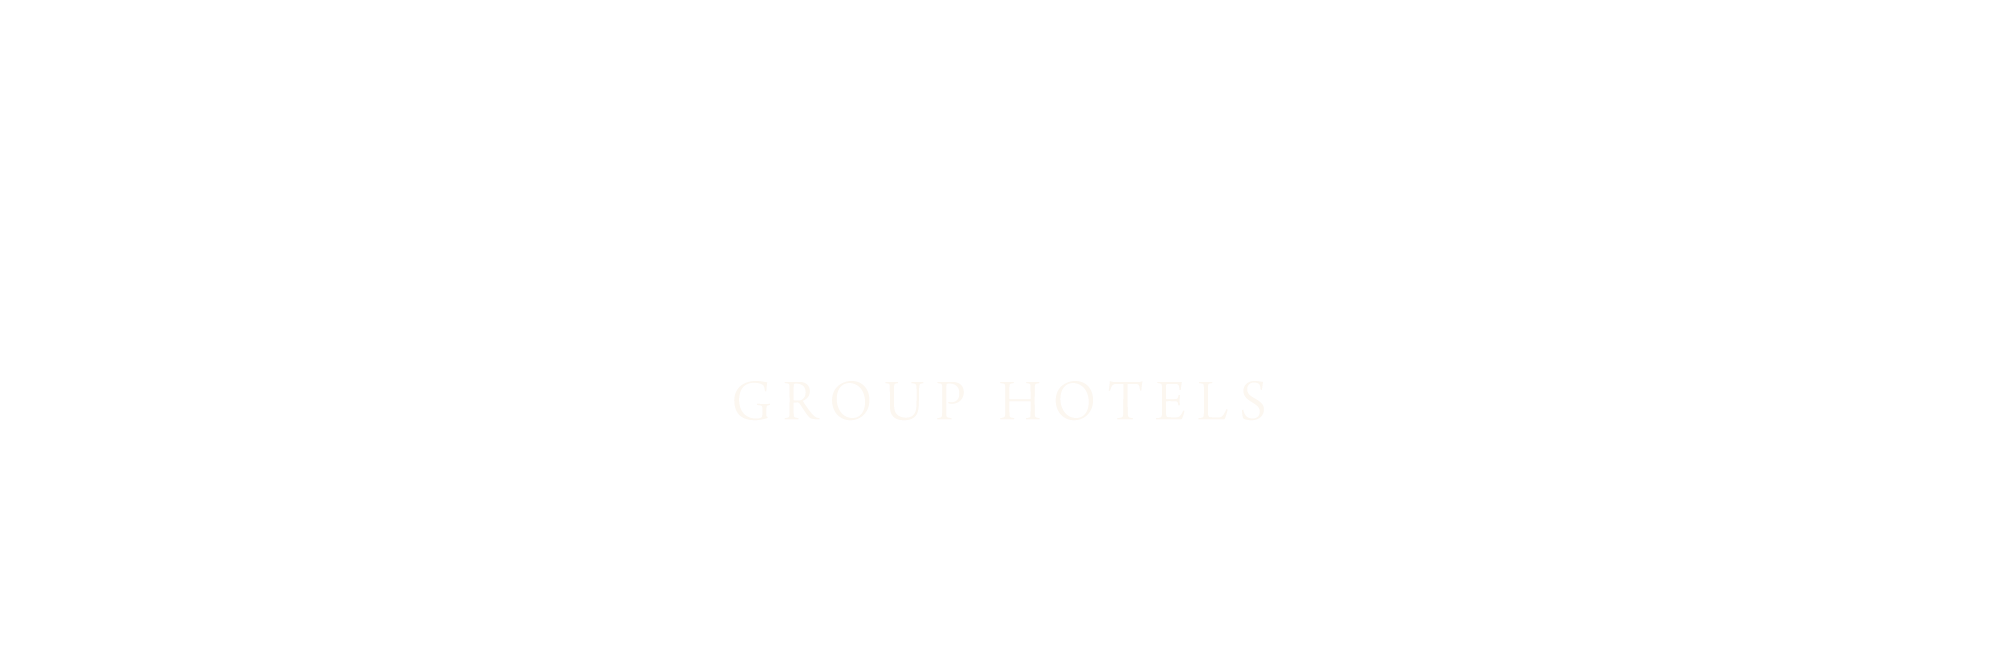 GROUP HOTELS